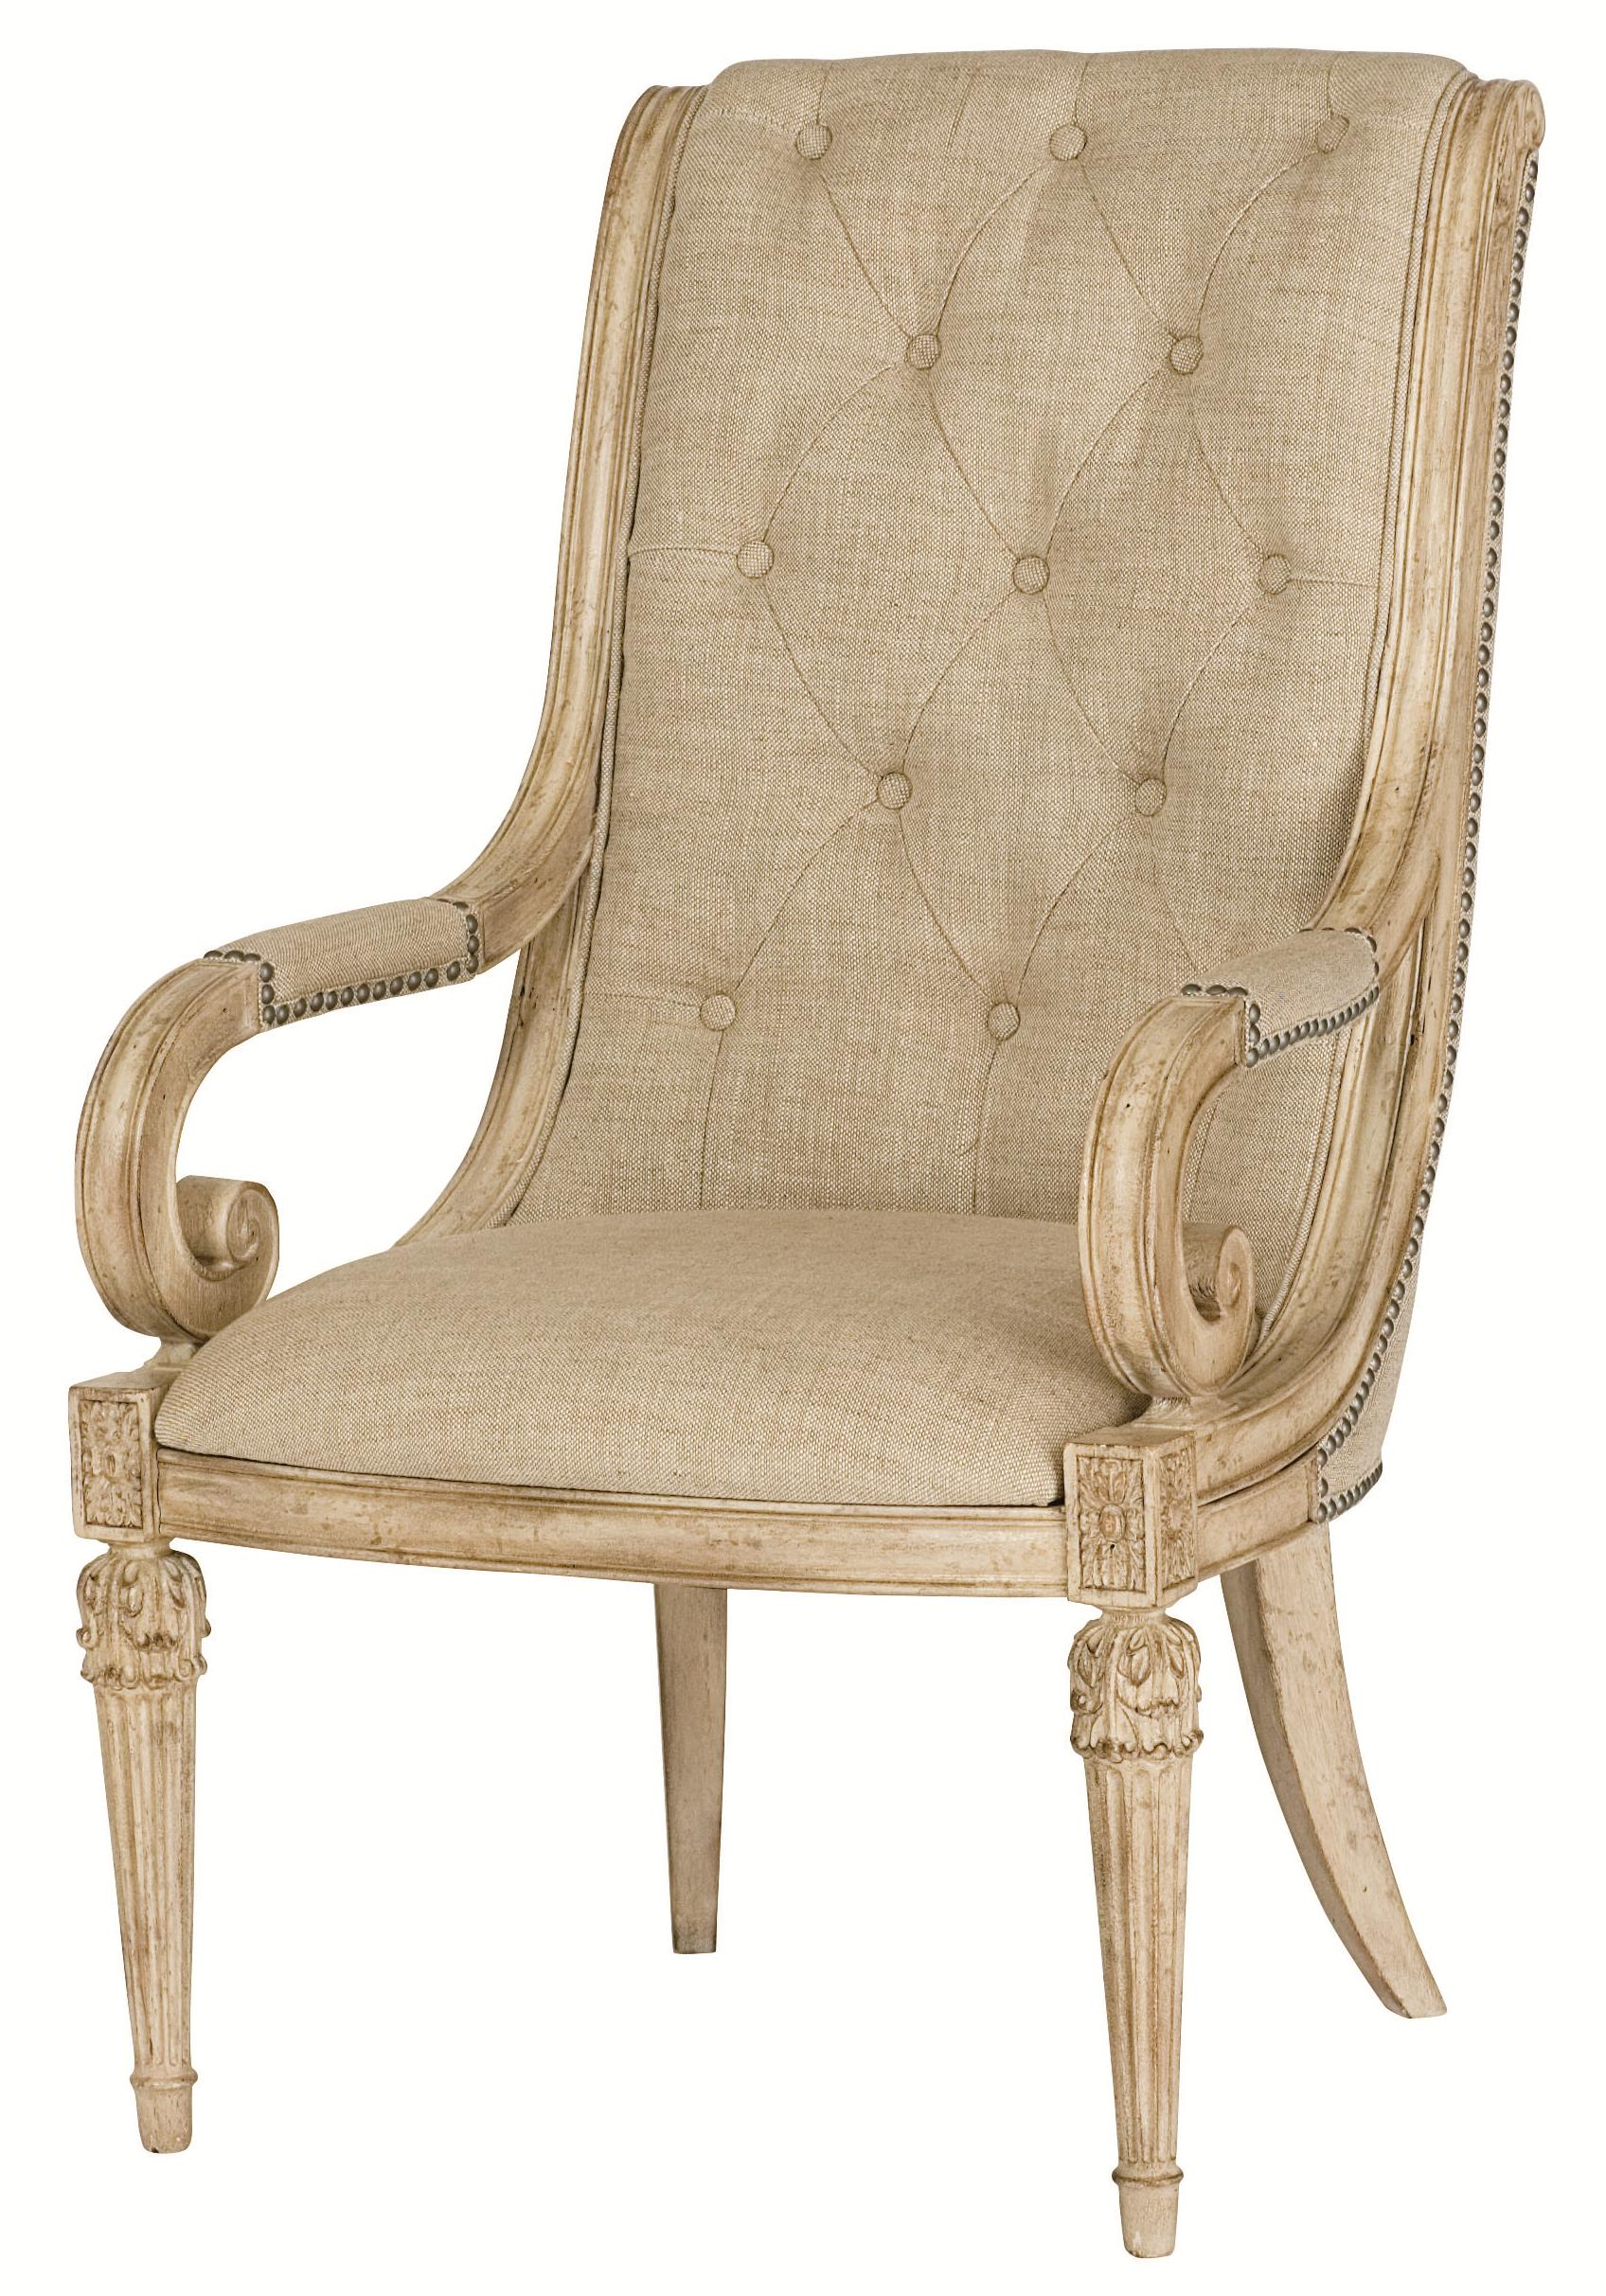 Upholstered Arm Chair With Upholstered Tufted Back Scroll Arms By American Drew Wolf And